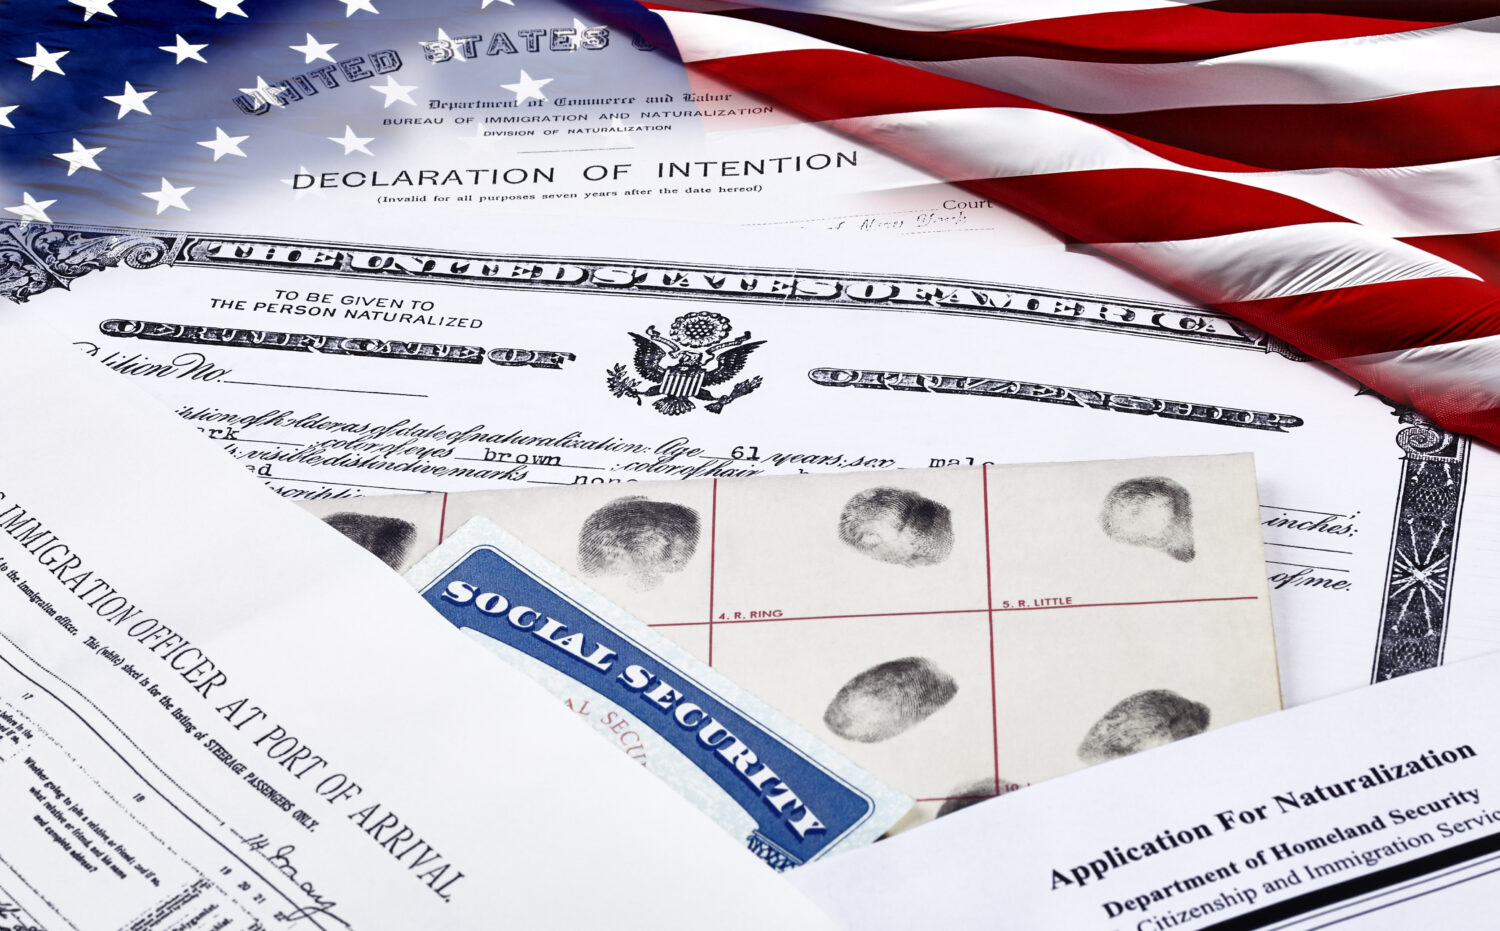 USCIS processing a naturalization application